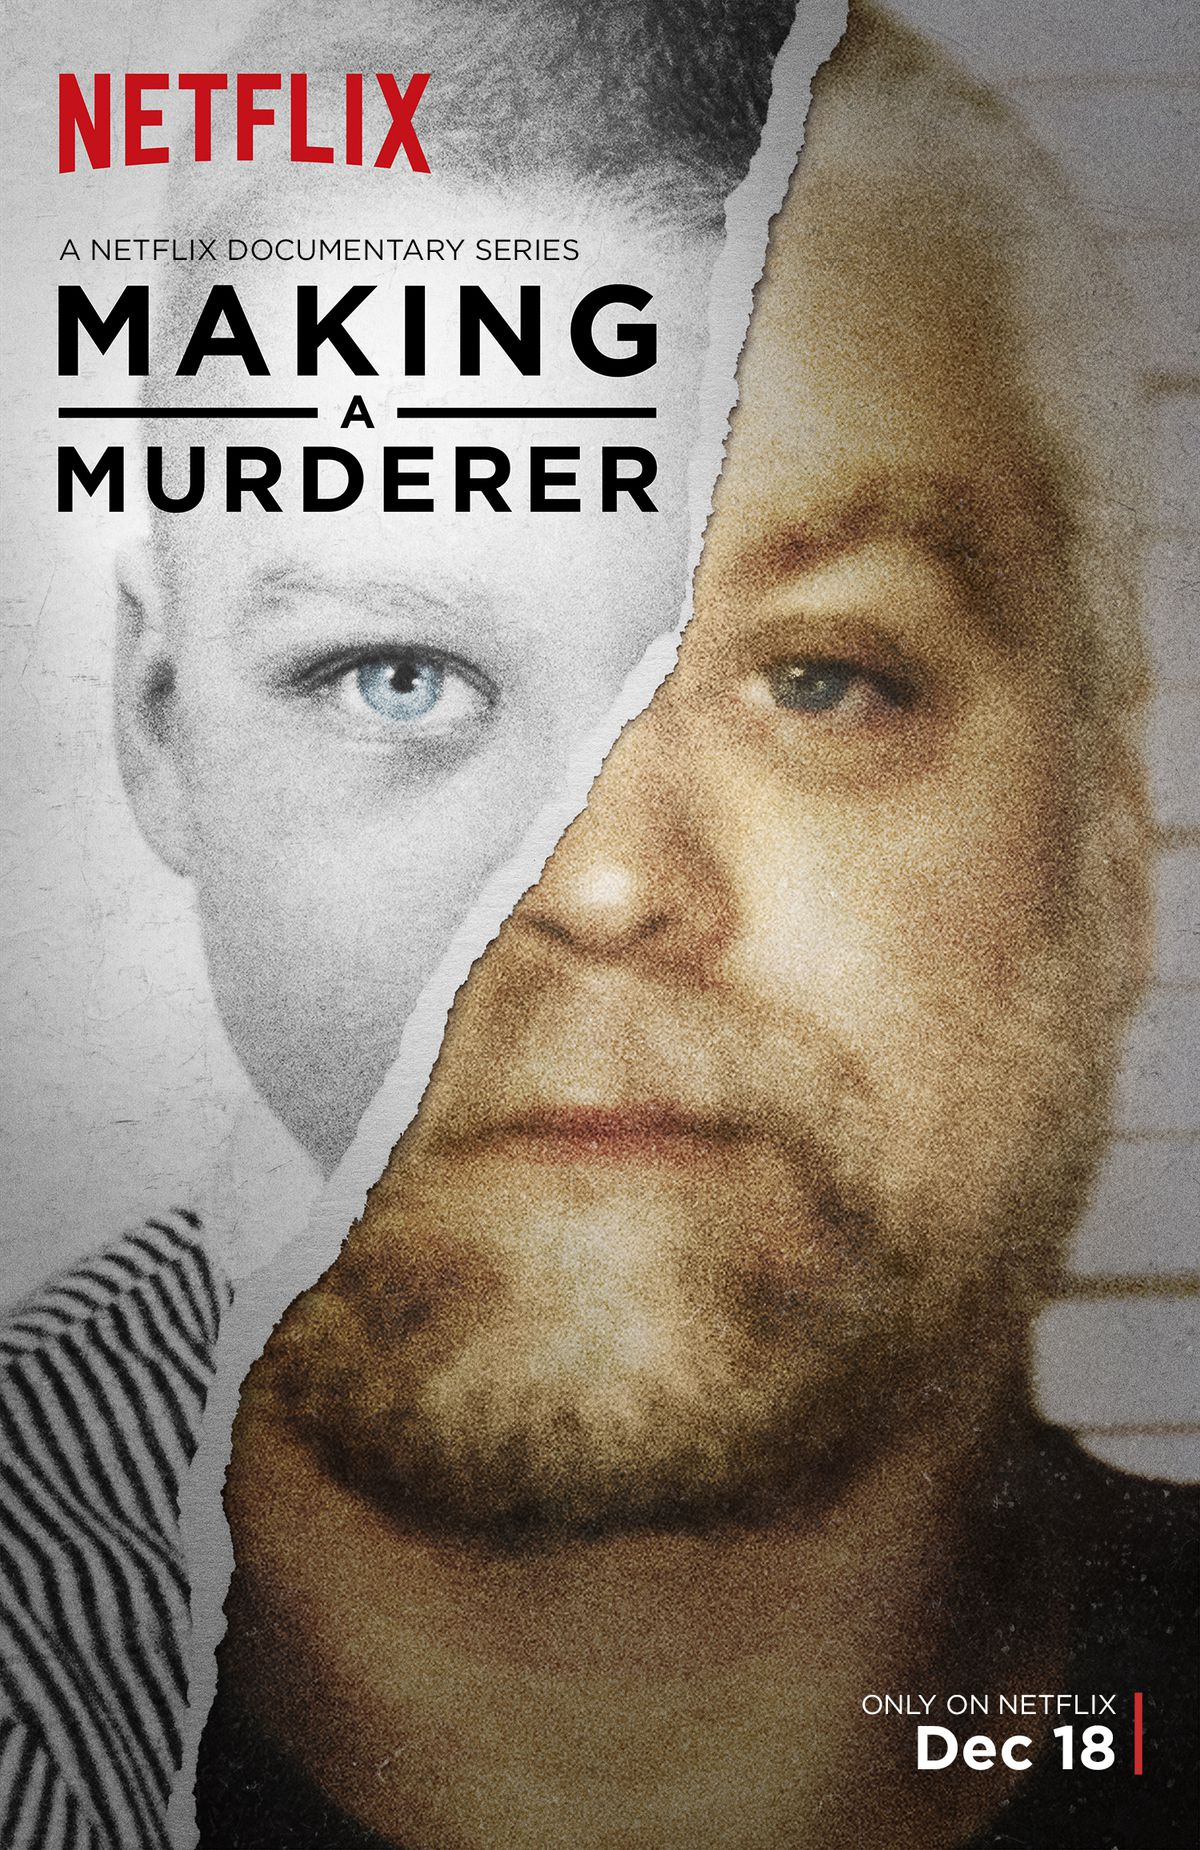 Netflix jumps into true-crime documentaries with Making a